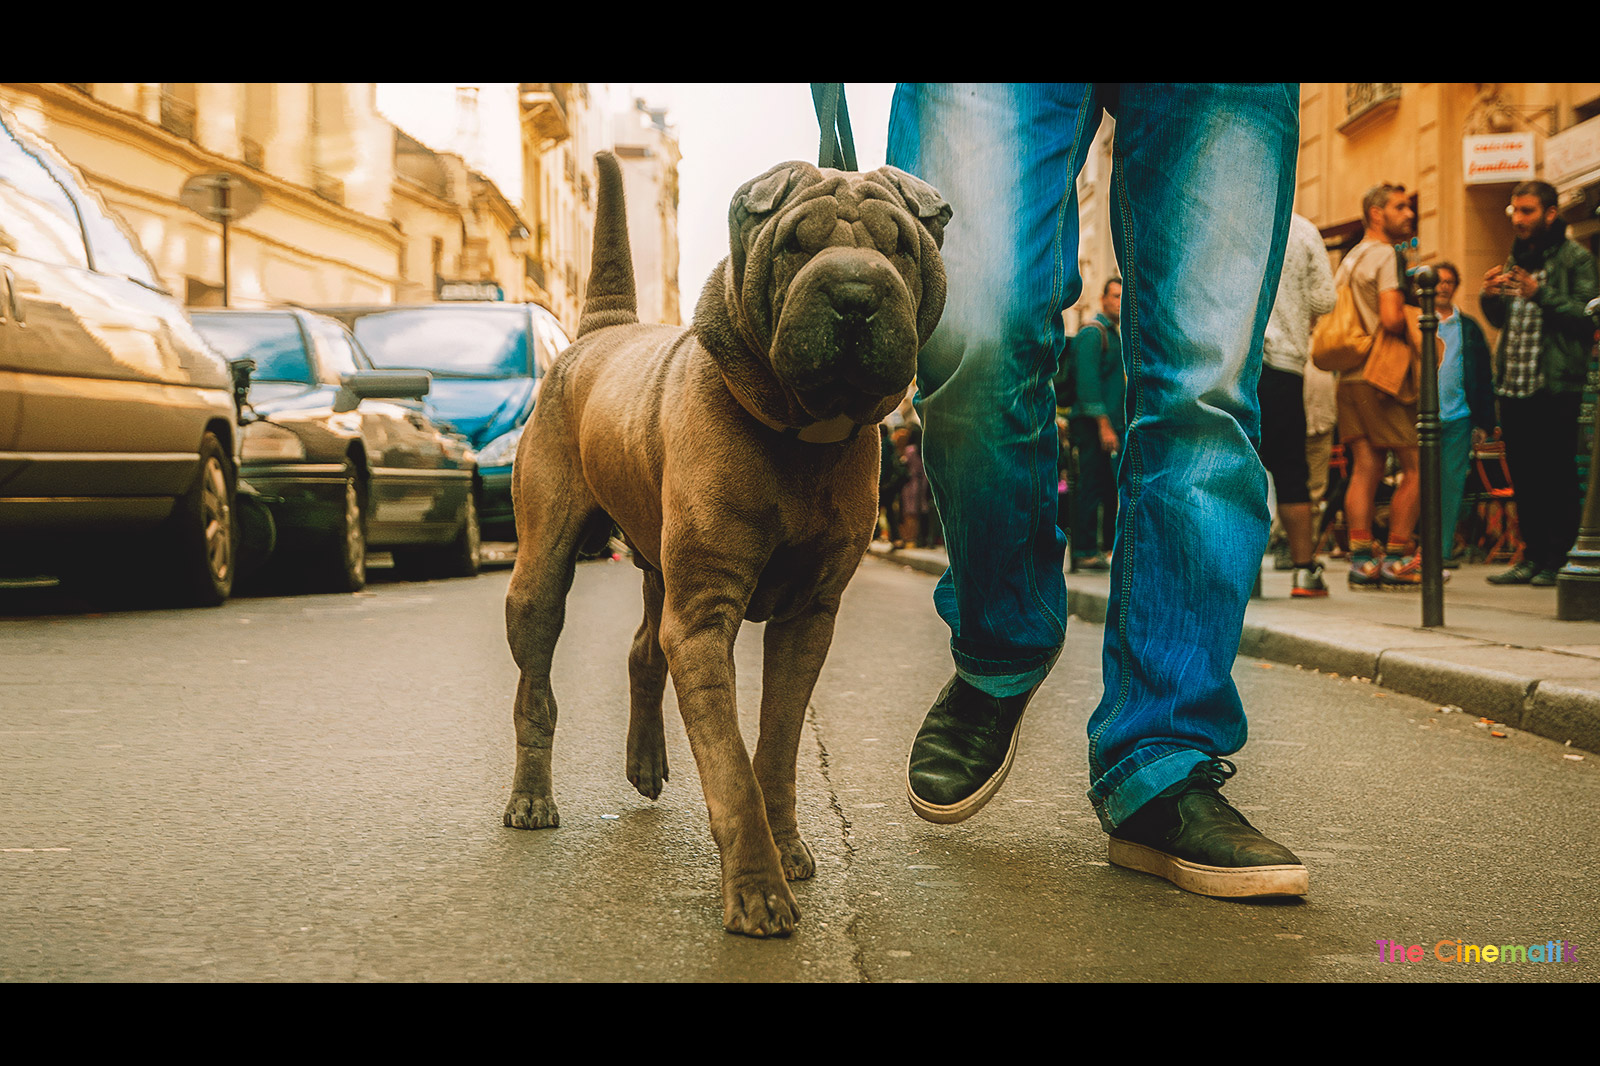 Beautiful dog with old face in Paris cinematic photograph by Kamal Lahmadi/THE CINEMATIK